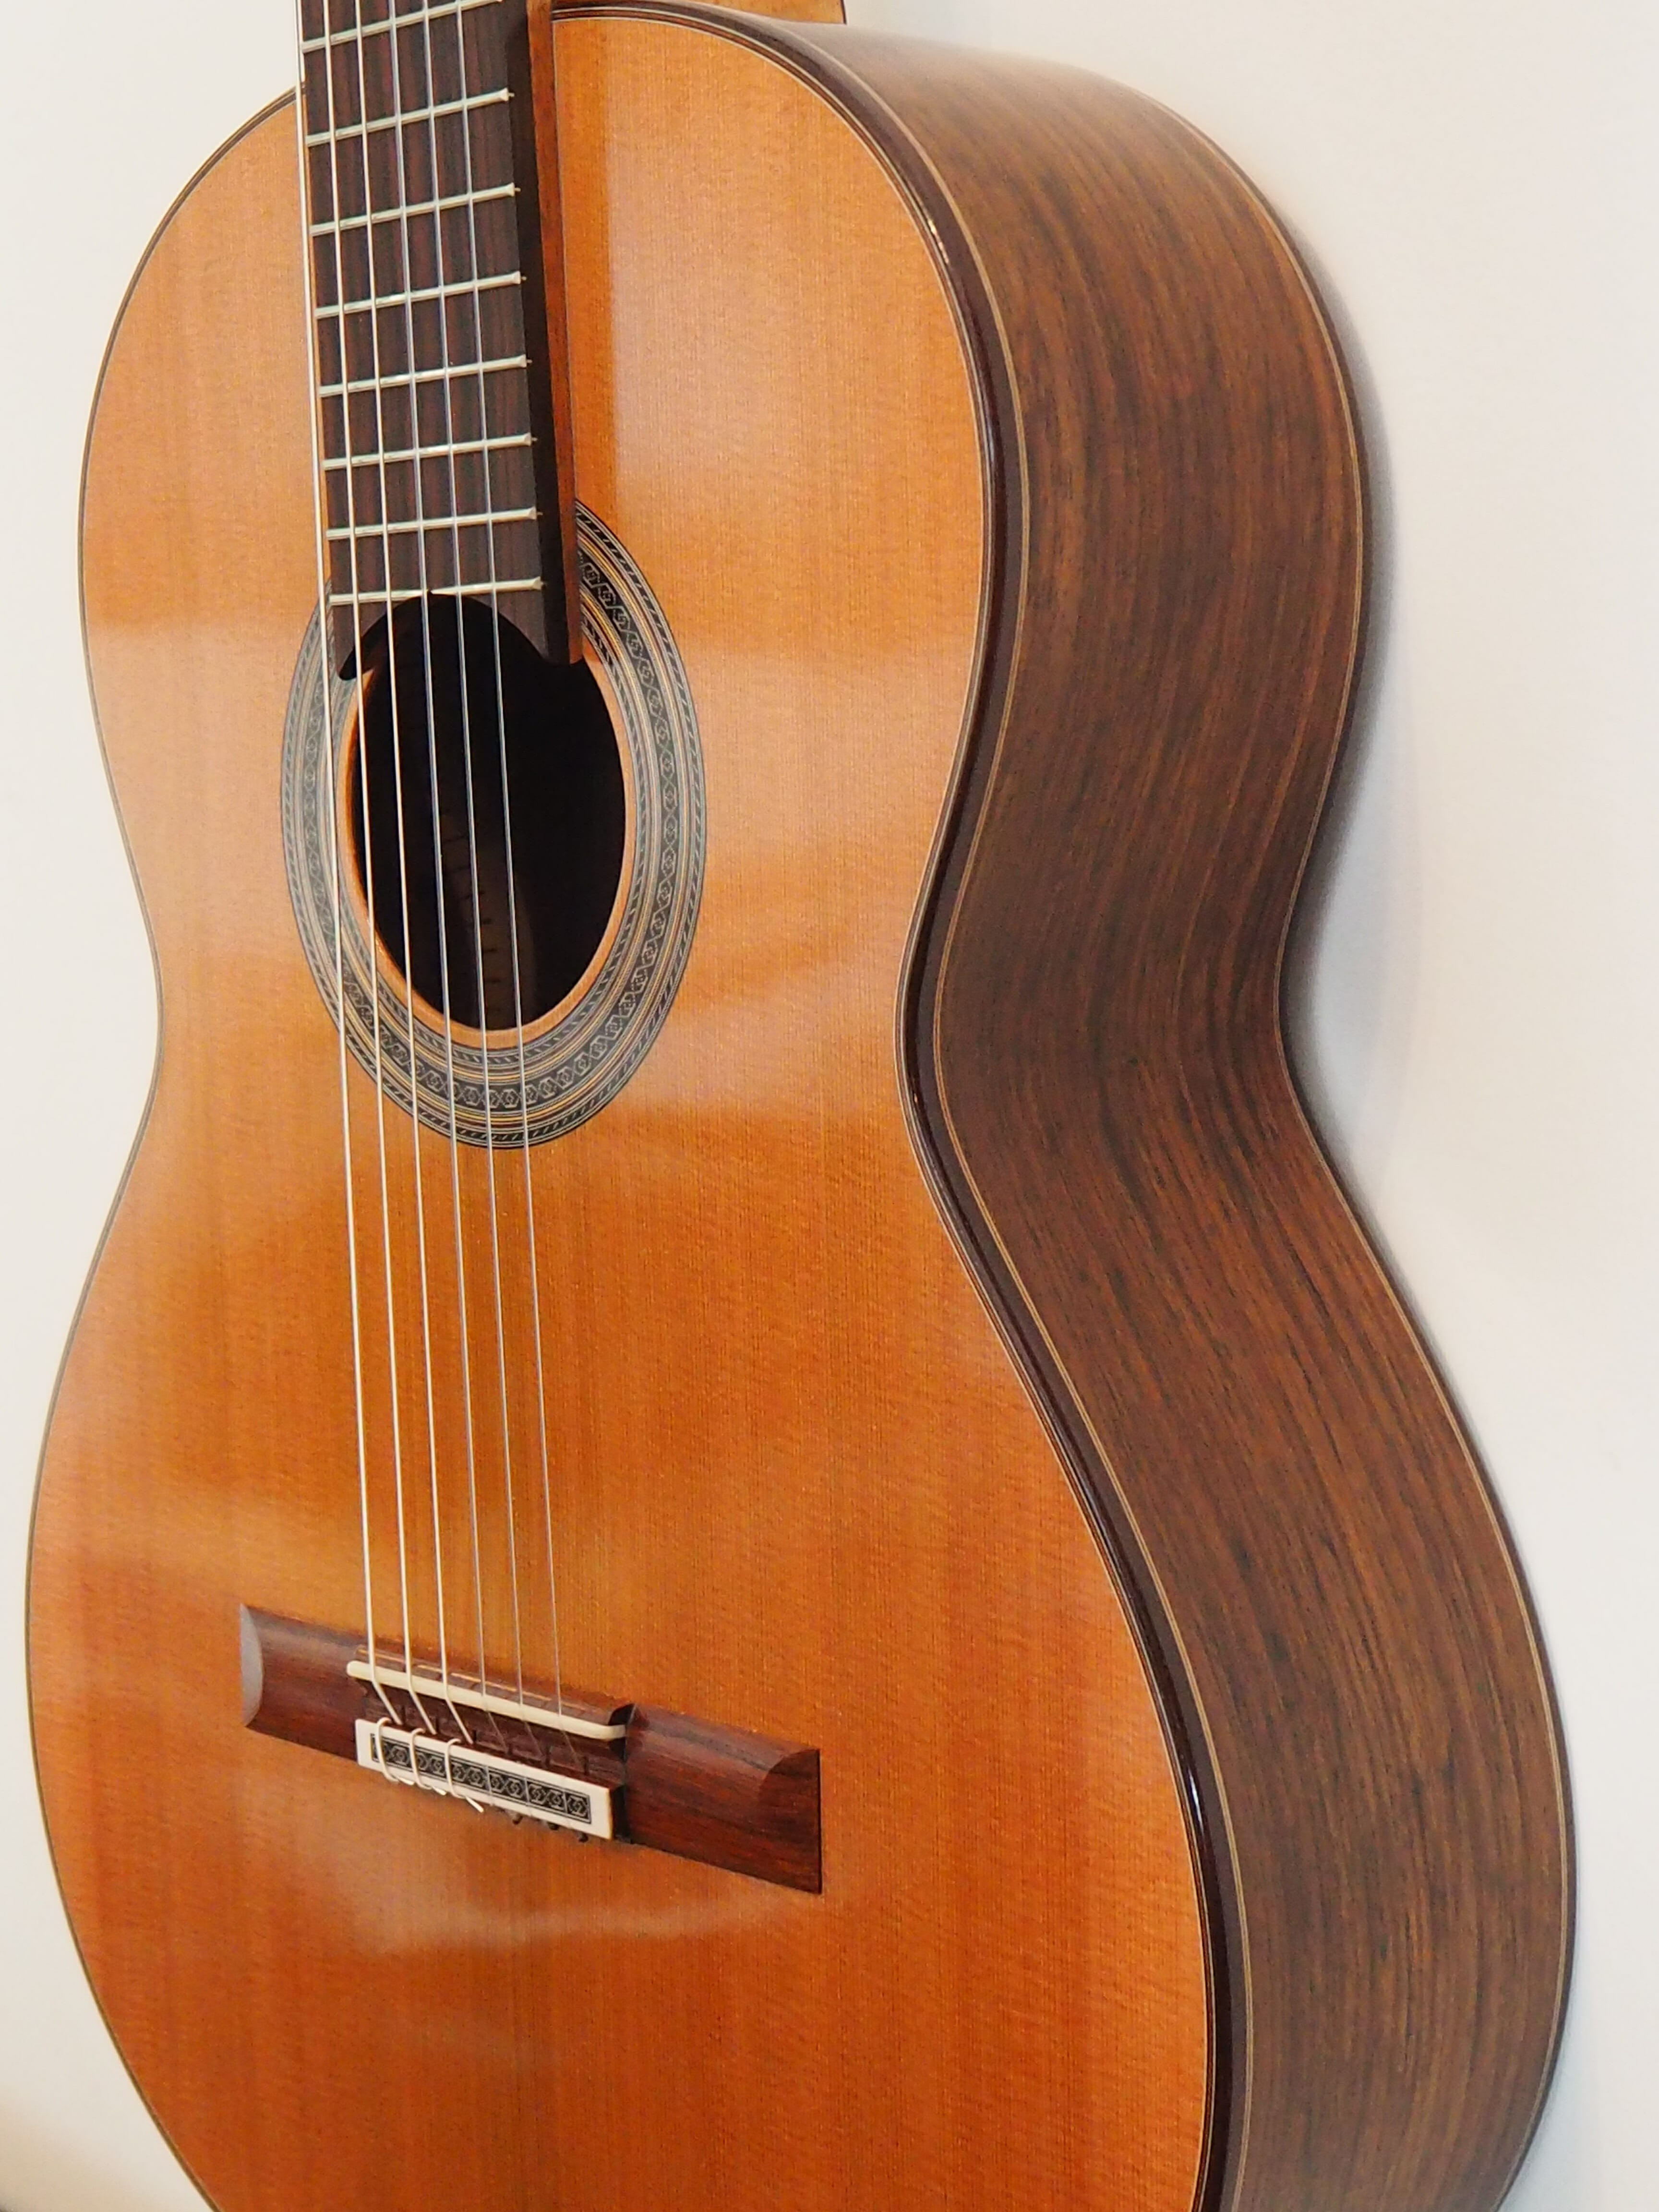 Dieter Muller guitare classique double-table luthier